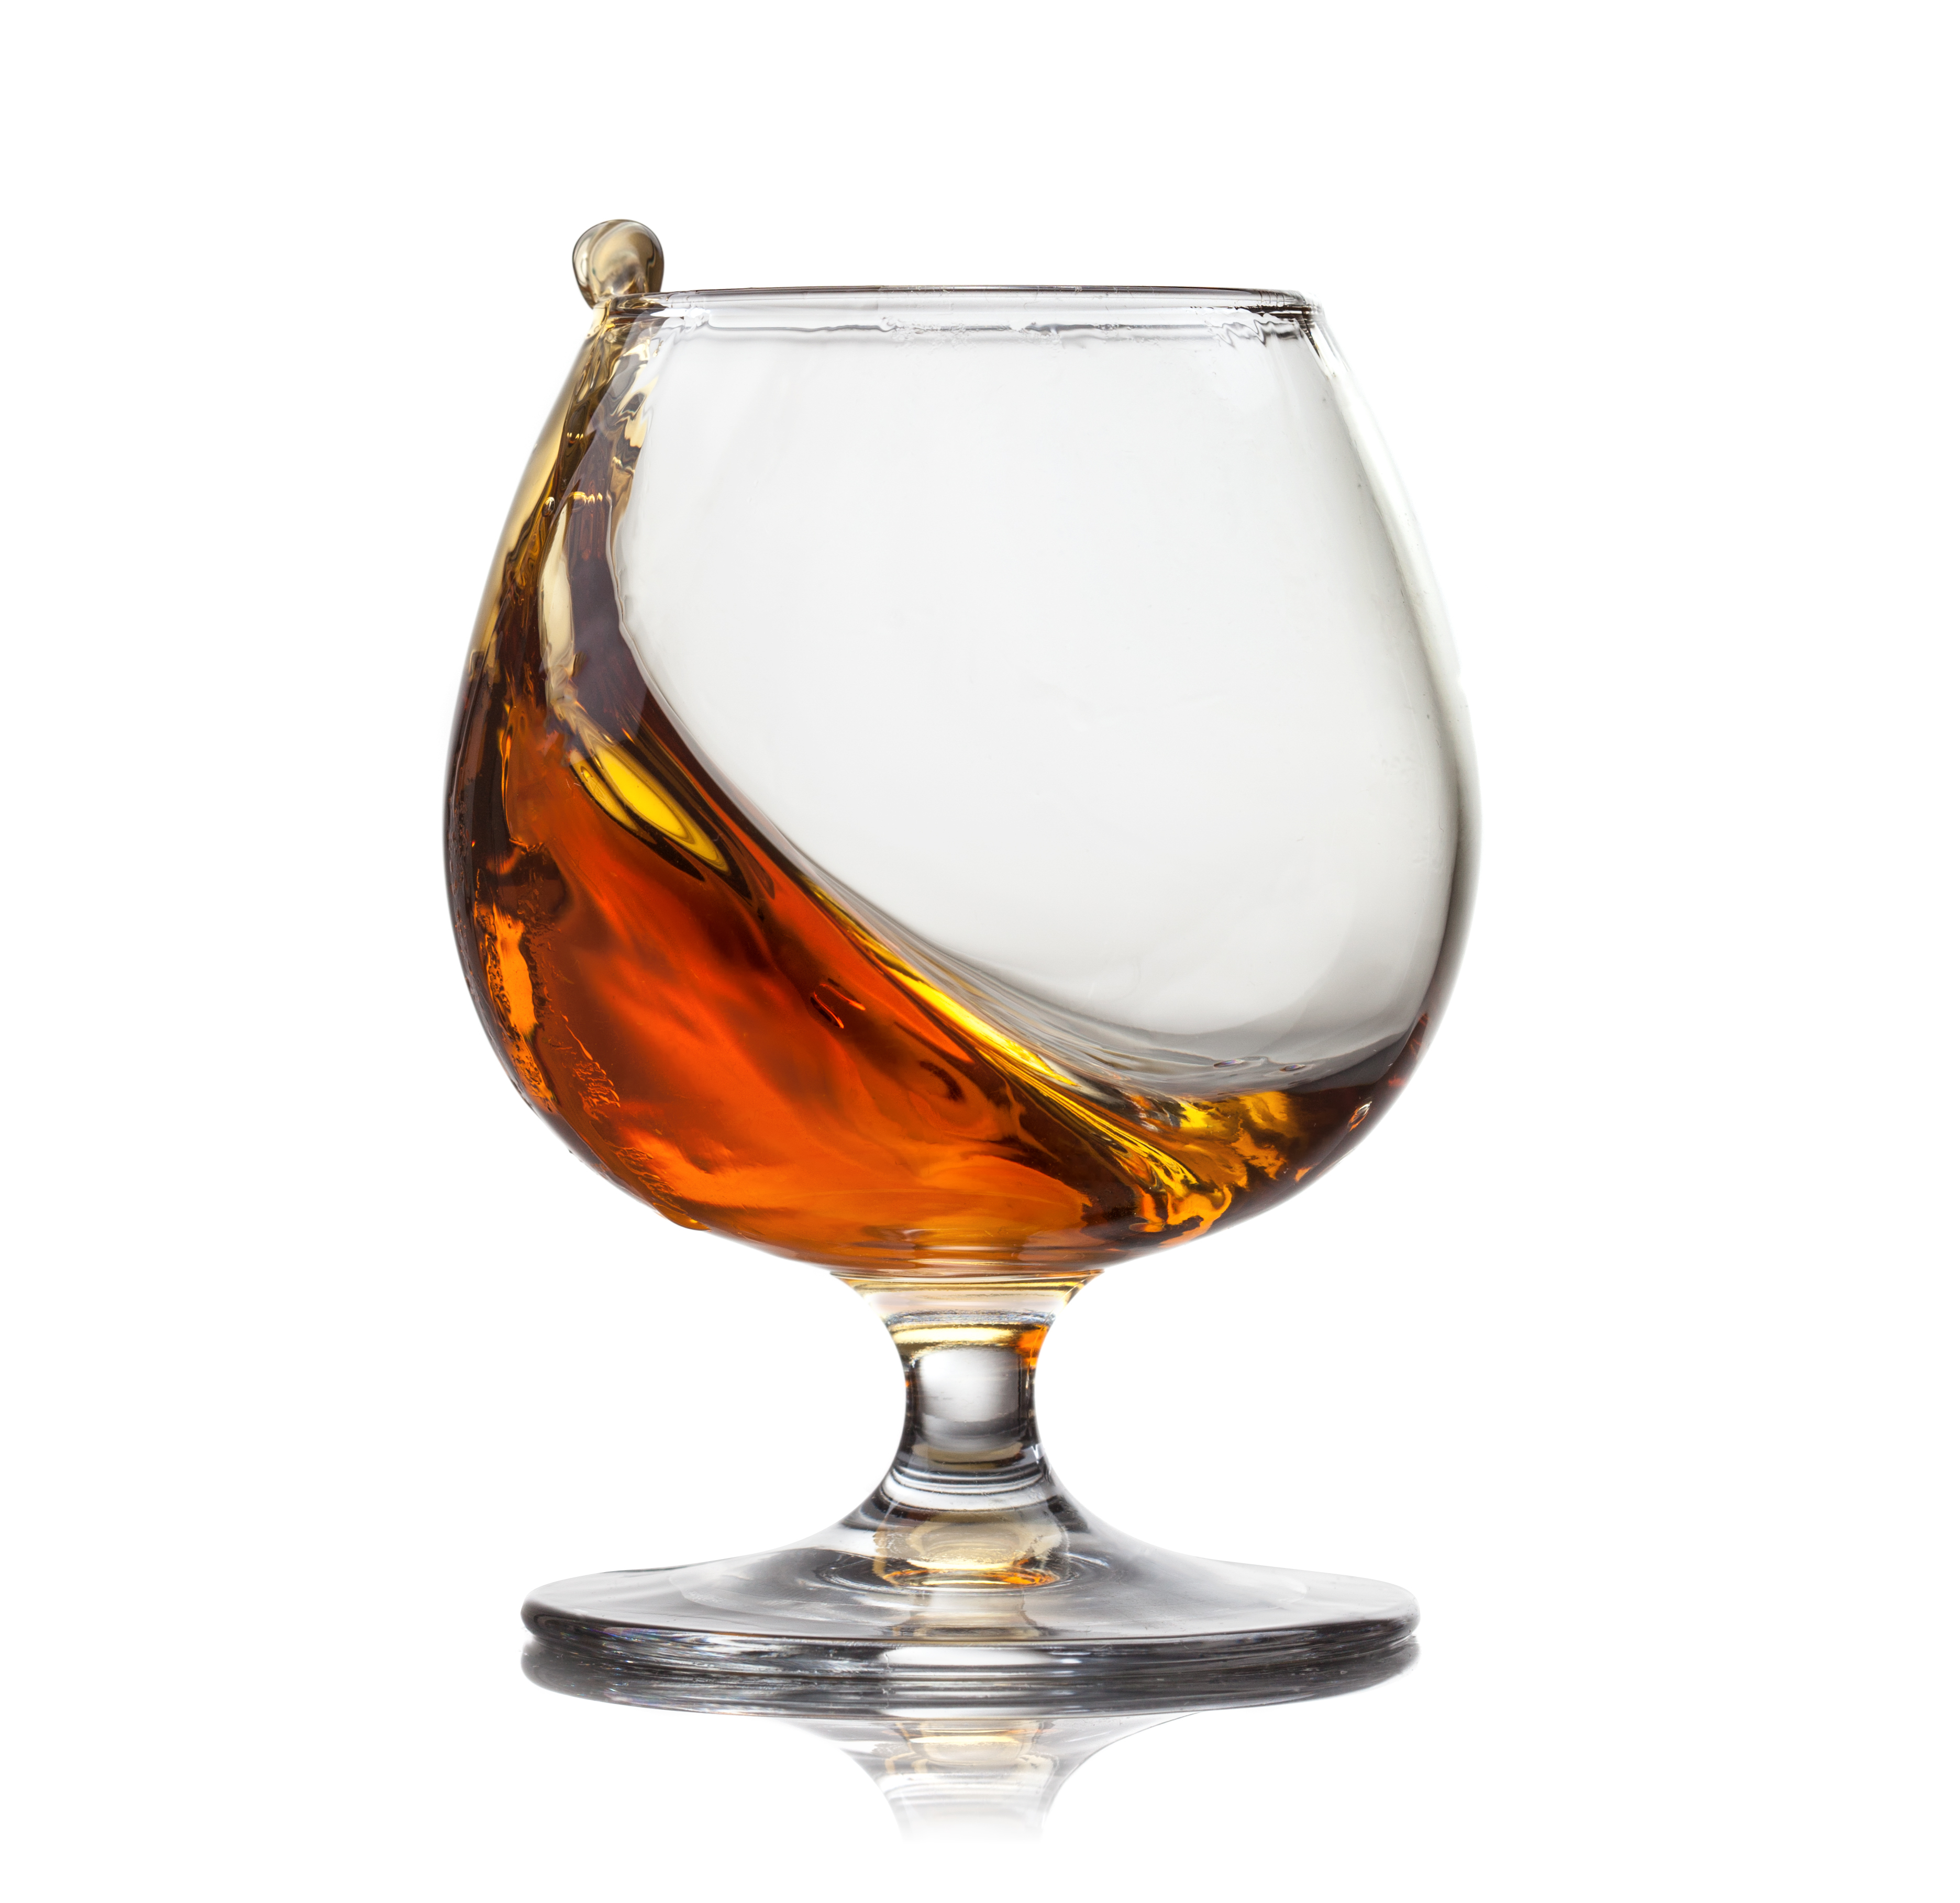 Splash,Of,Cognac,In,Glass,Isolated,On,White,Background